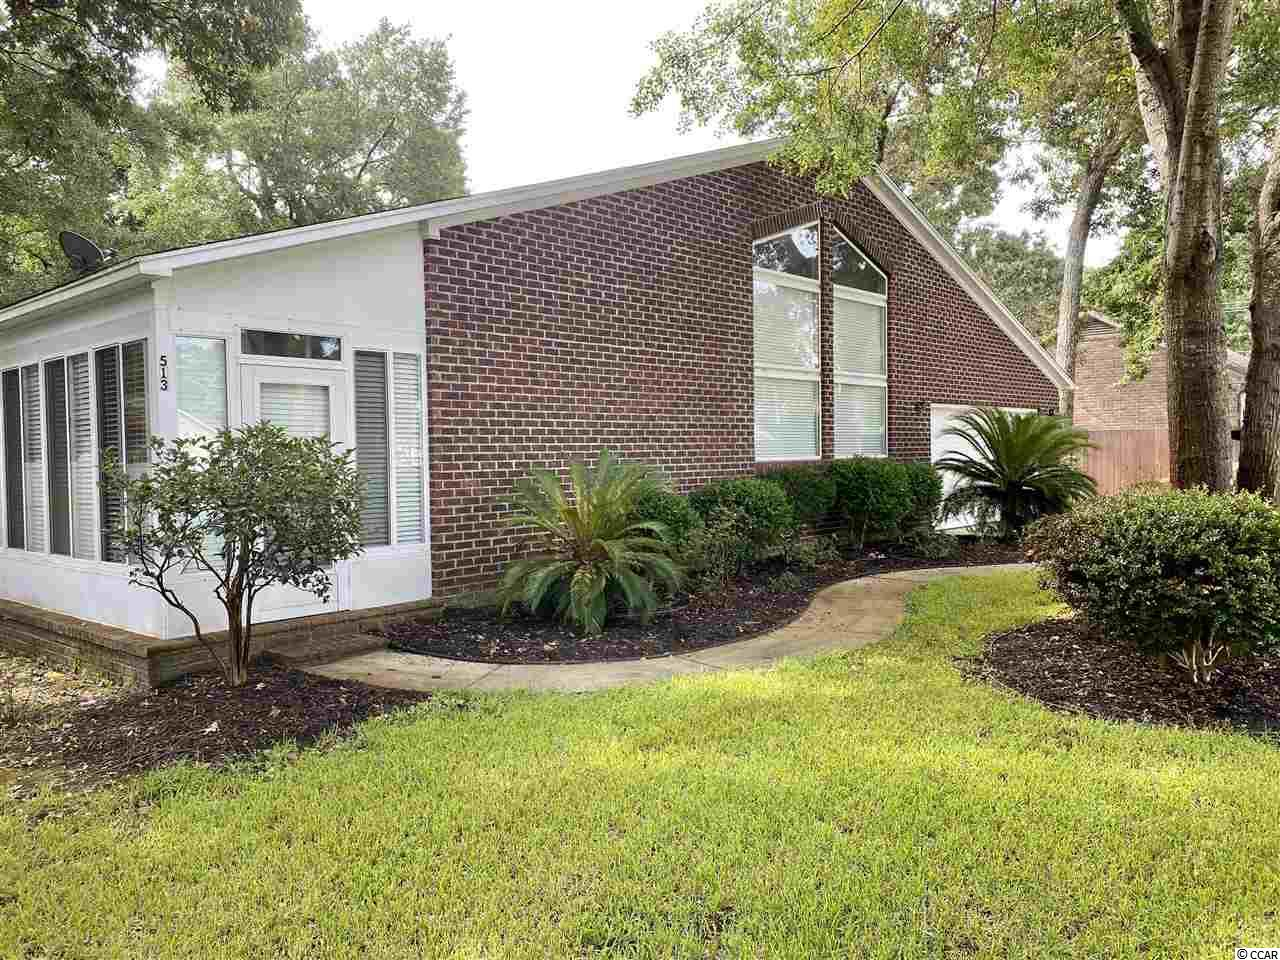 Very nice all brick home east of Bus 17 in the Town of Surfside Beach.  Three bedroom, two bath, front porch, rear deck, high ceilings, propane gas fireplace, separate laundry room, quartz counter tops and updated bathrooms.  Very large backyard, lawn well and irrigation.  Private outside shower, large side yard deck with custom furniture.  Spectacular large workshop that is insulated and ready to wood work.  Large trees and lush landscaping. Much of the  custom built furniture convey.  Lots of light with a functional floor plan.  Not all bedrooms are conforming: contact agent for full bedroom details.